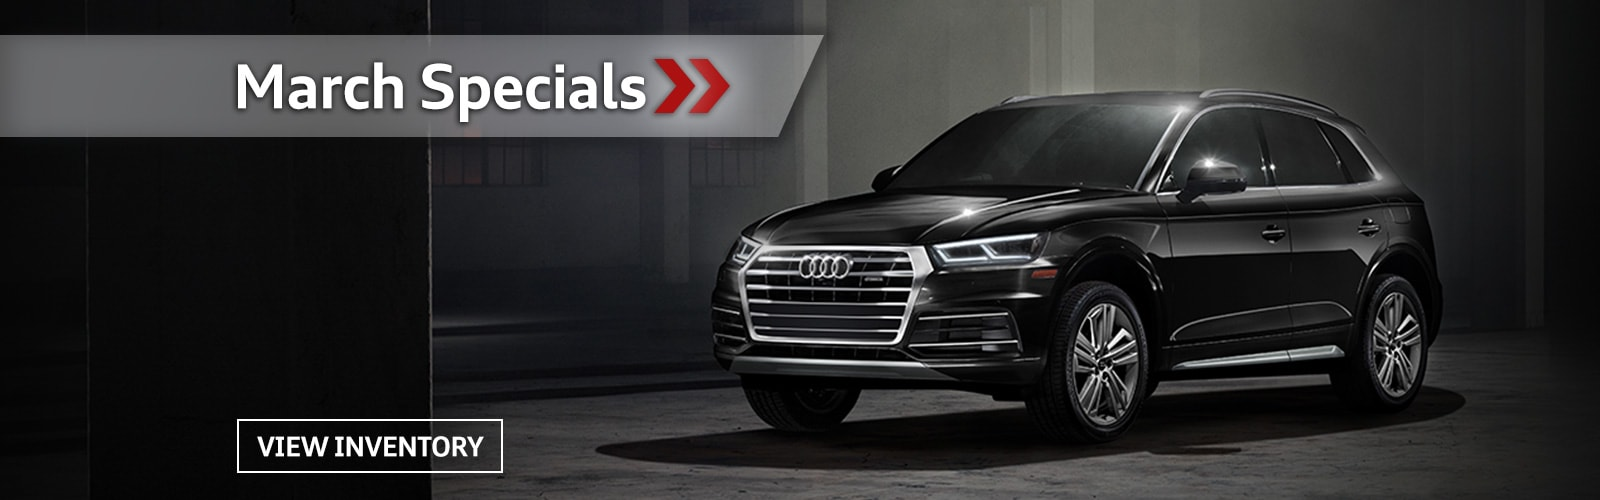 New Audi Dealership In Pembroke Pines FL Serving Fort Lauderdale - Audi dealers in south florida